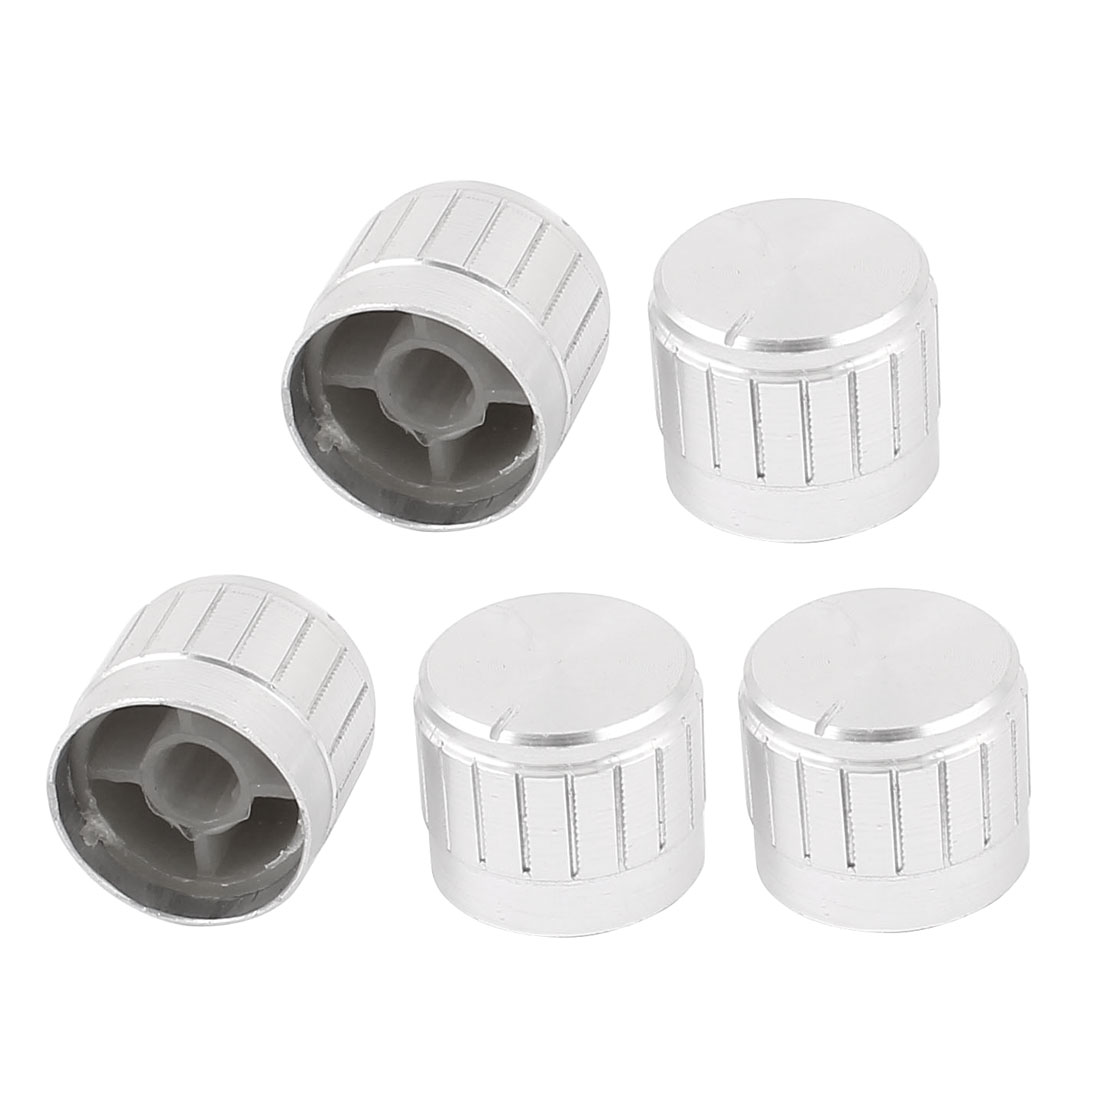 5pcs 5.5mm Knurled Shaft Amplifier AV CD Volume Tone Control Rotary Knobs